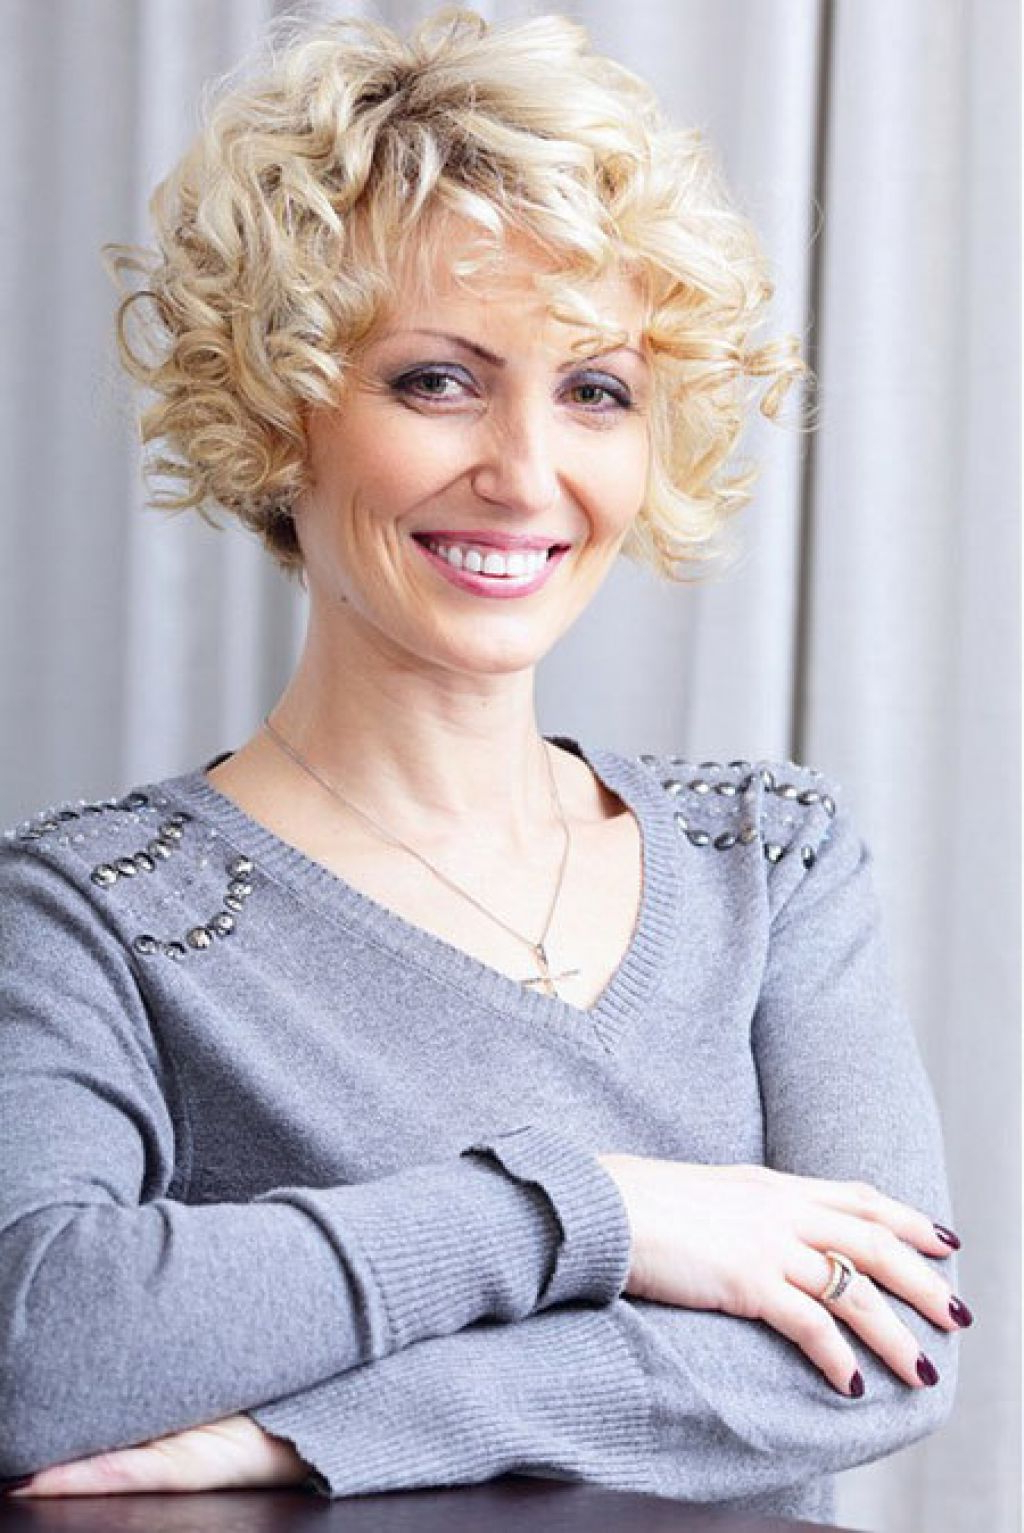 29 Latest Curly Short Hairstyles For Women | Pretty Inspiration Throughout Short Haircuts For Women Over 40 With Curly Hair (View 24 of 25)